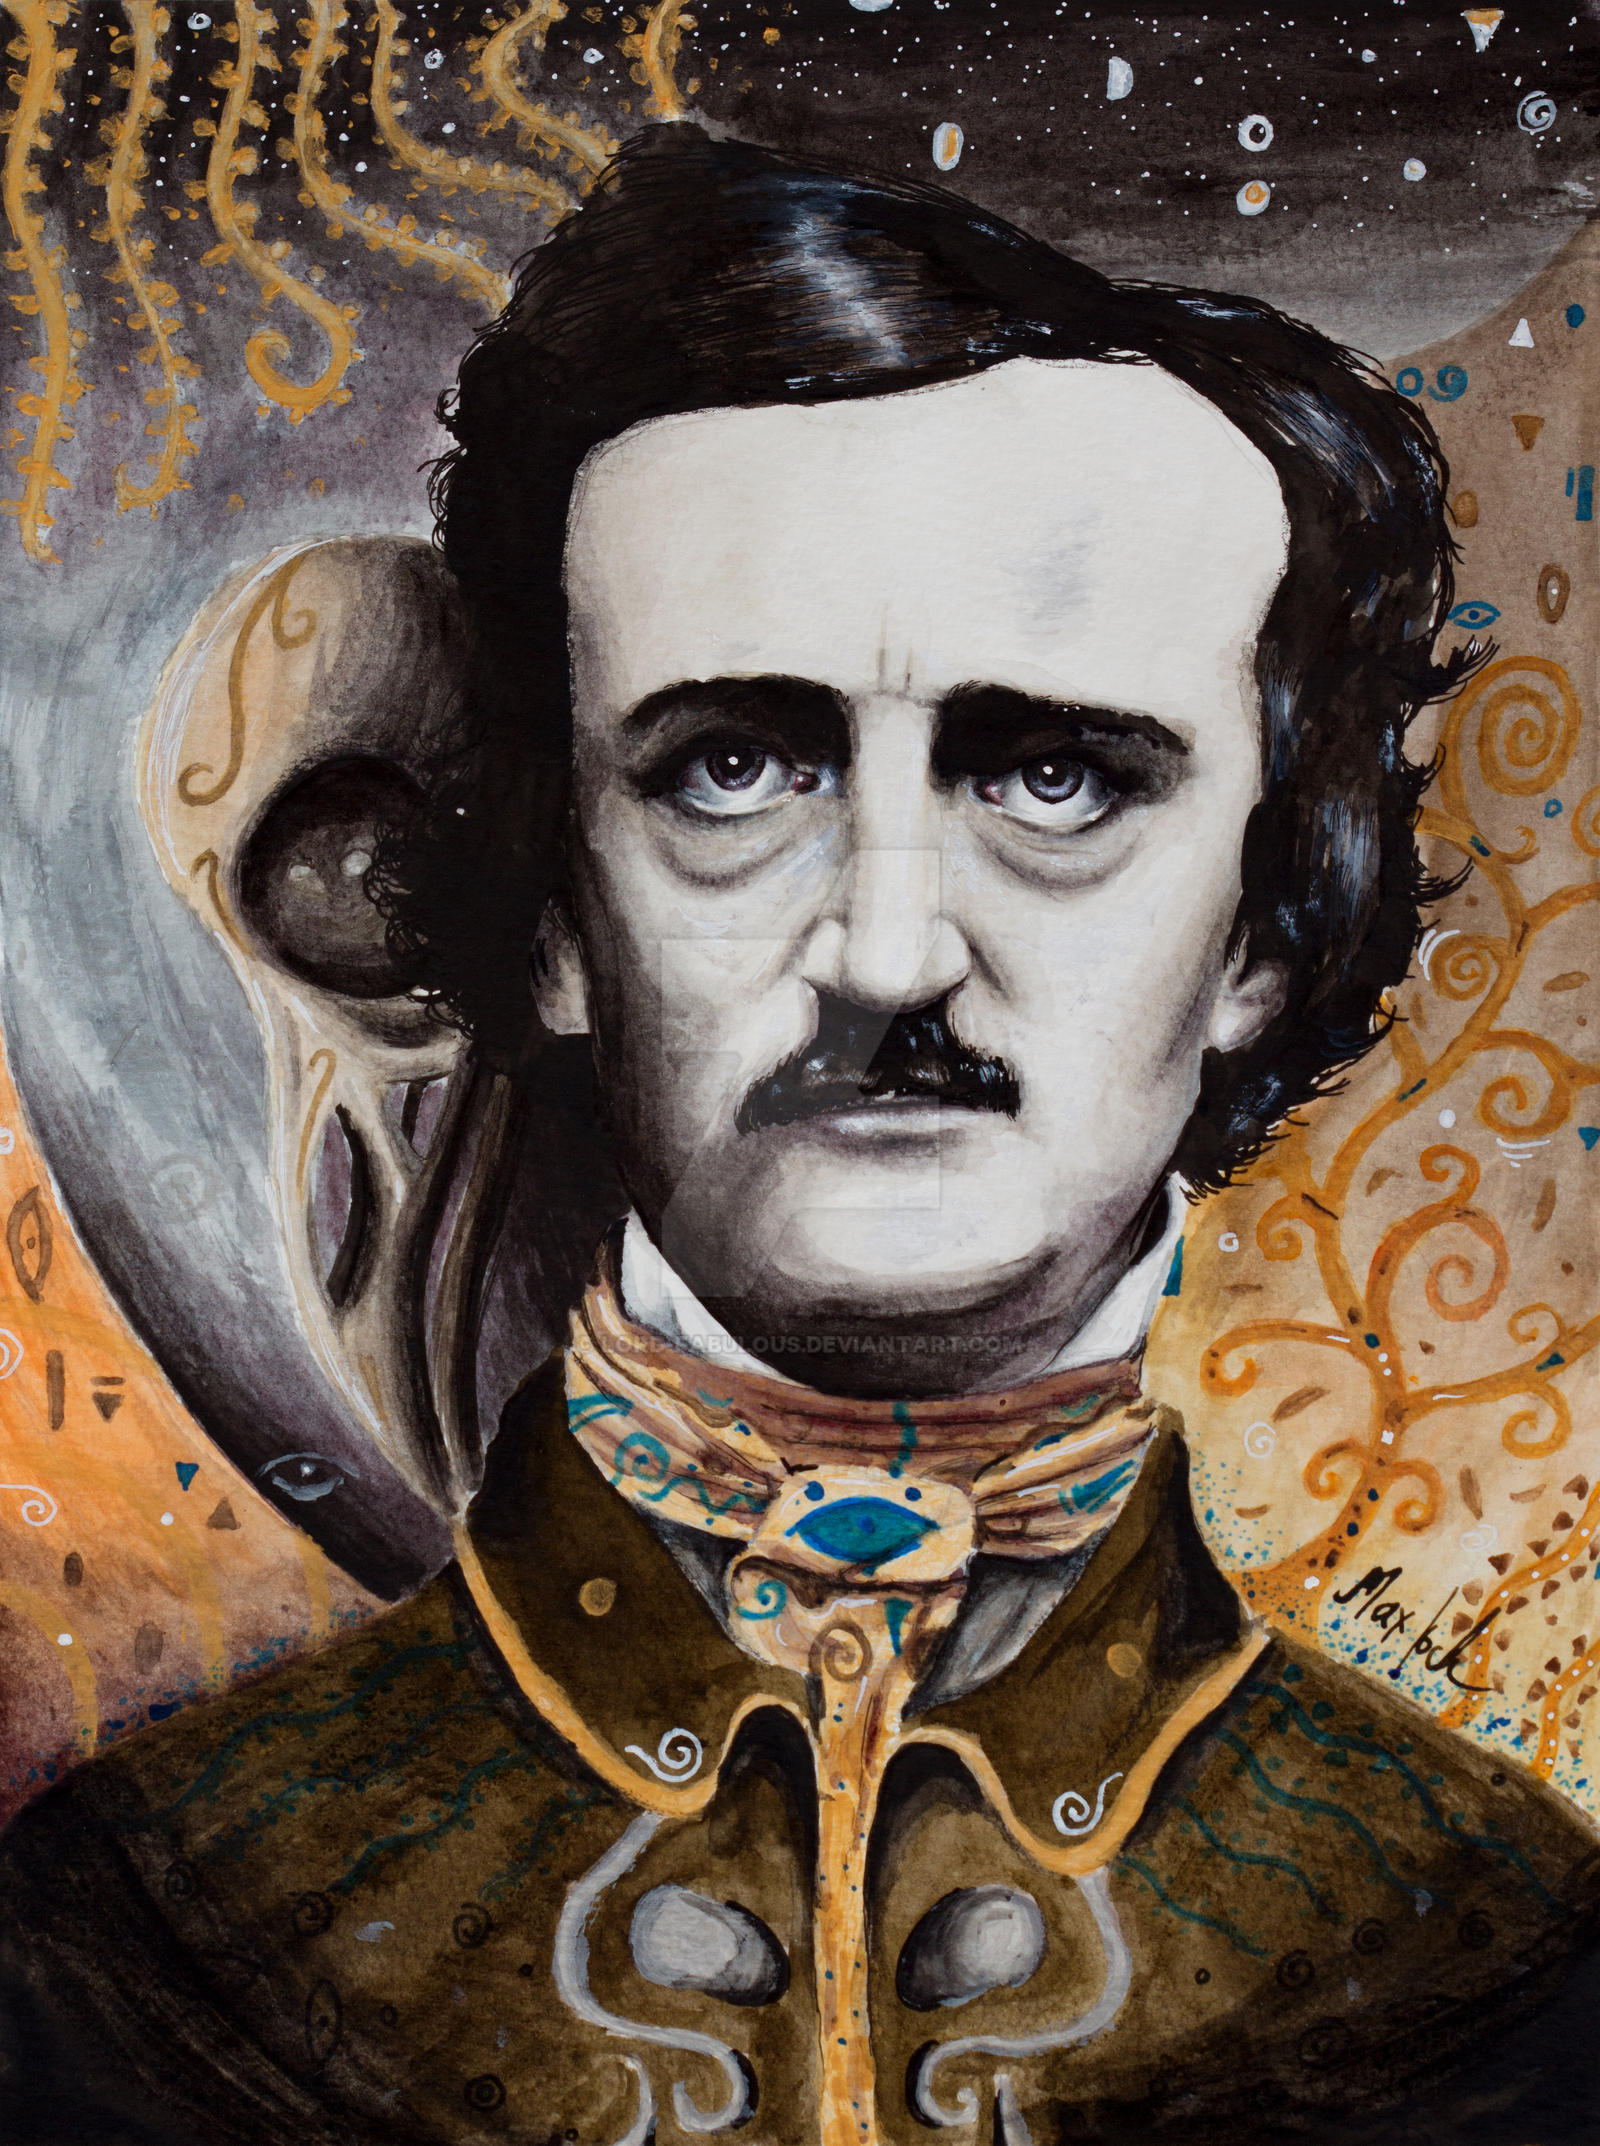 edgar allen poe the raven Once upon a midnight dreary, while i pondered, weak and weary, / over many a quaint and curious volume of forgotten lore / while i nodded, nearly napping, suddenly there came a.